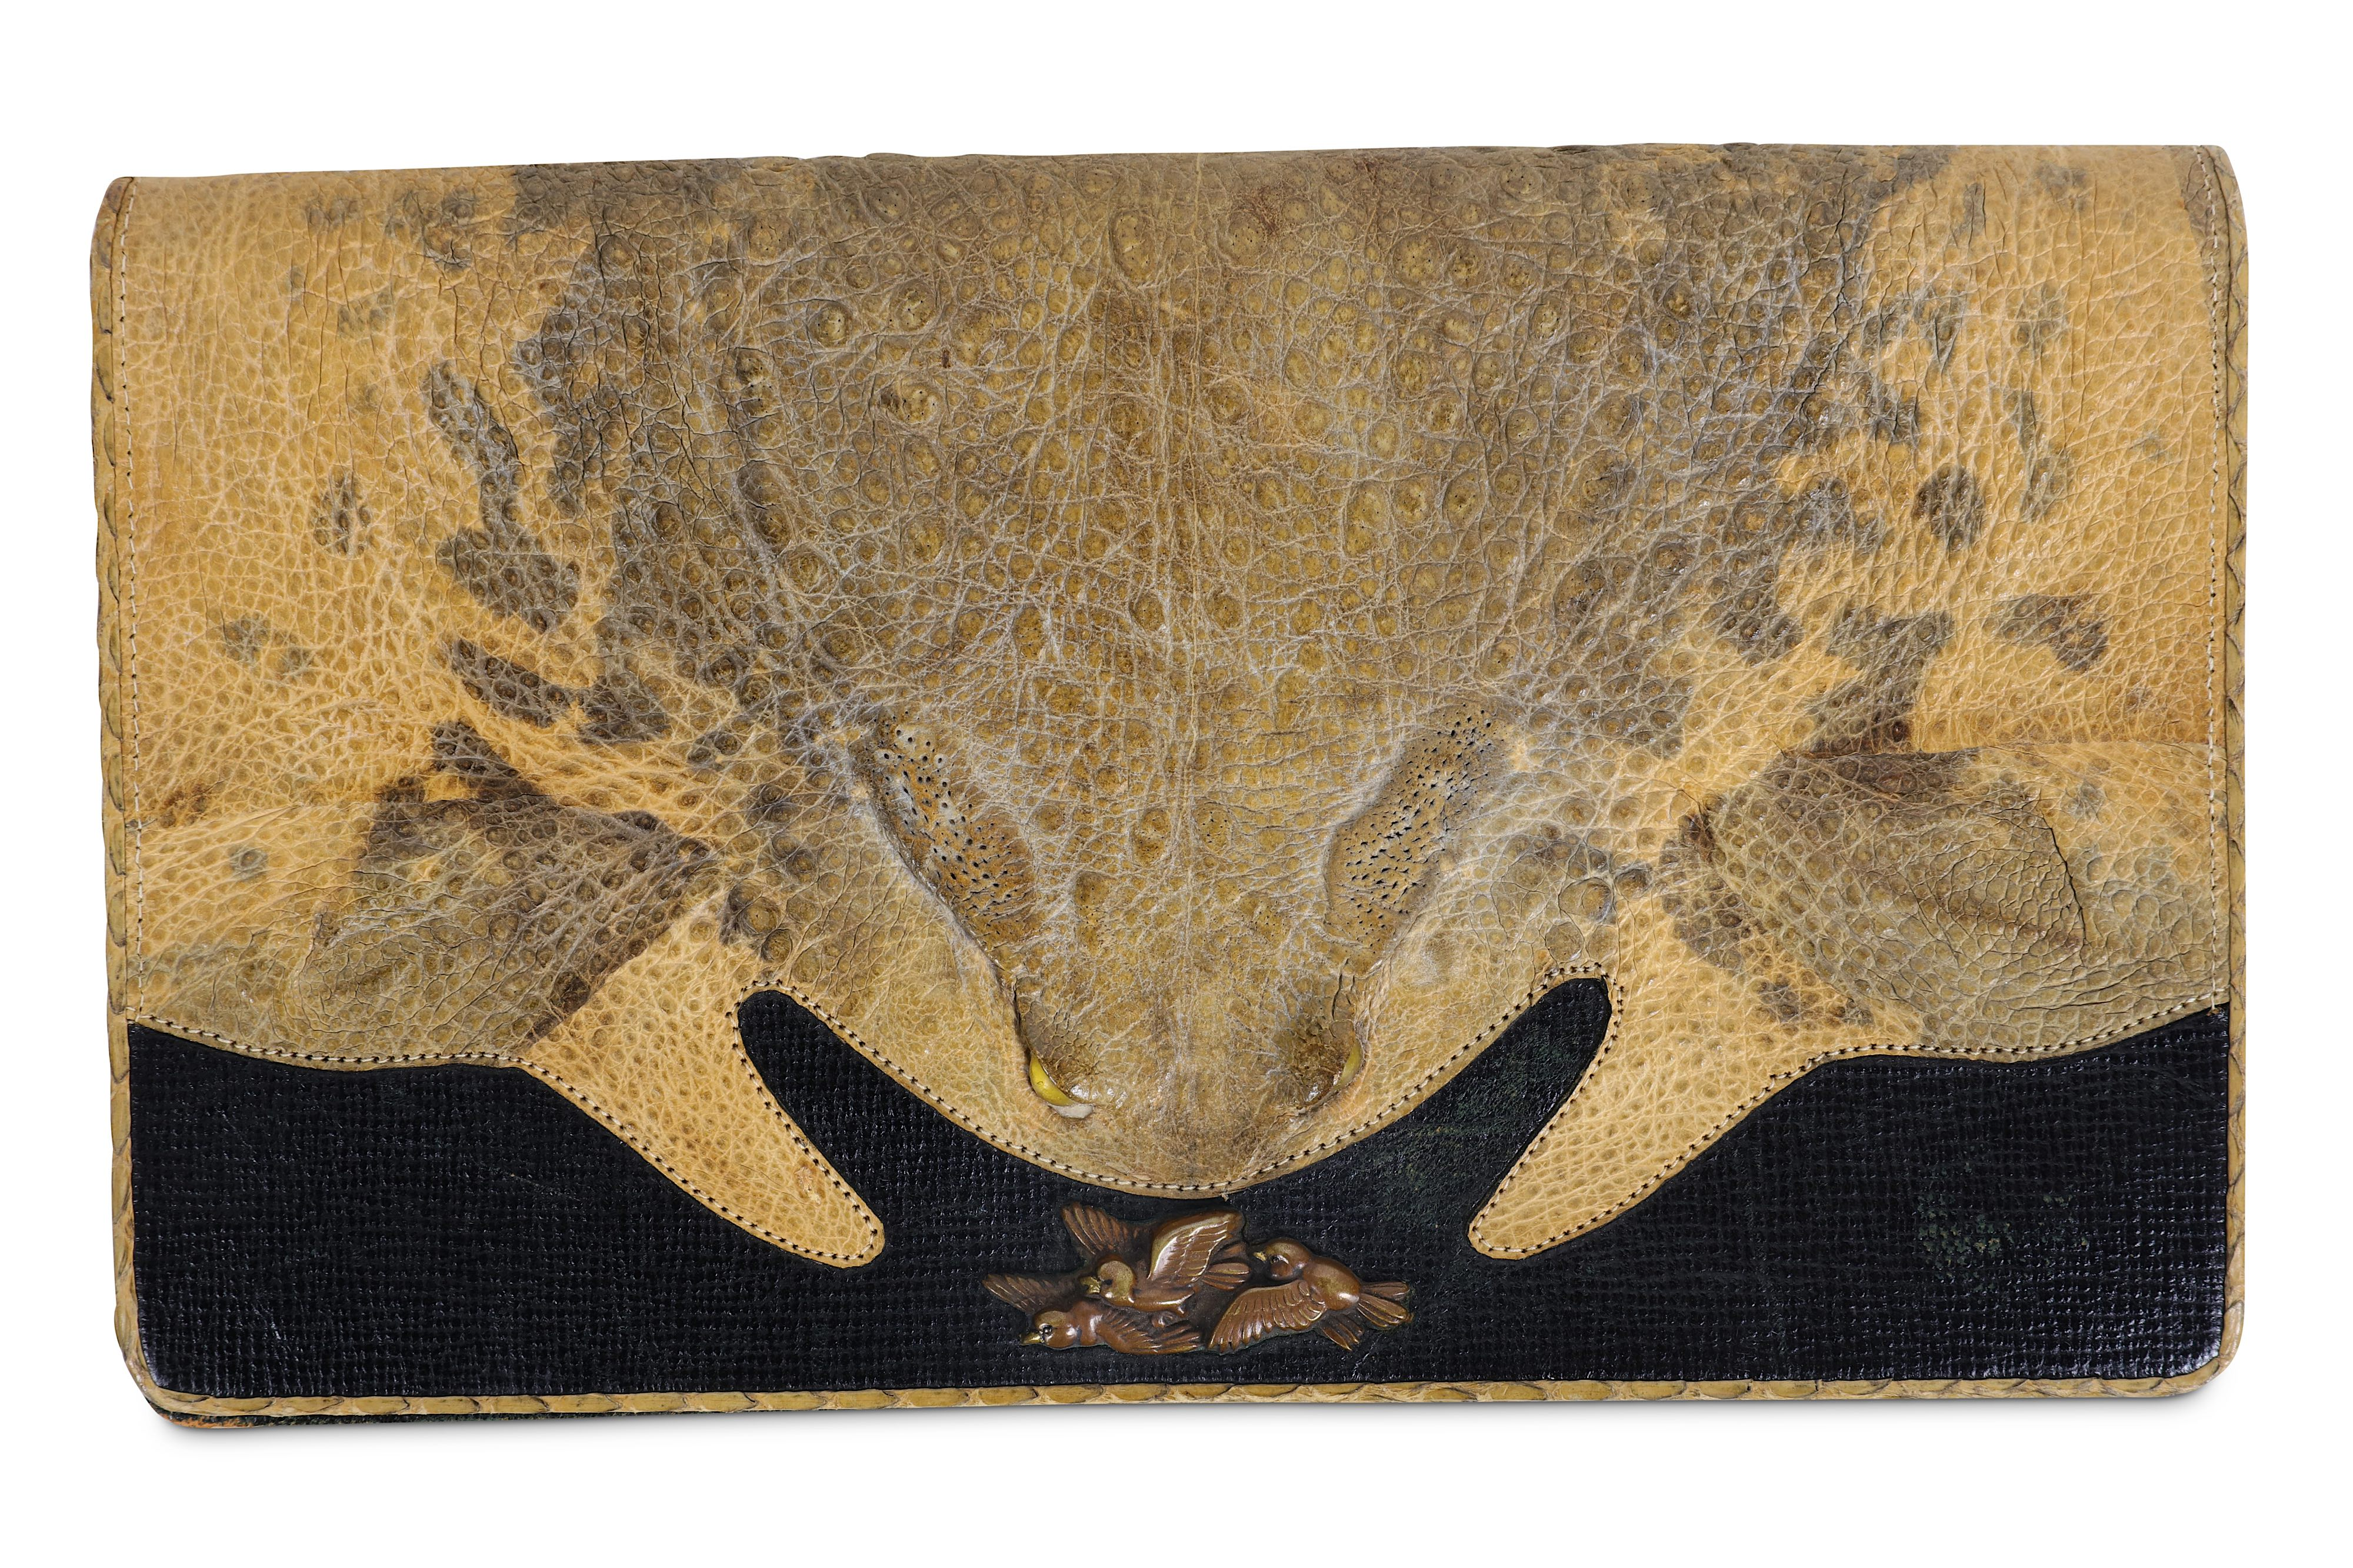 Lot 24 - A 1930'S JAPANESE PURSE FORMED FROM A CANE TOAD